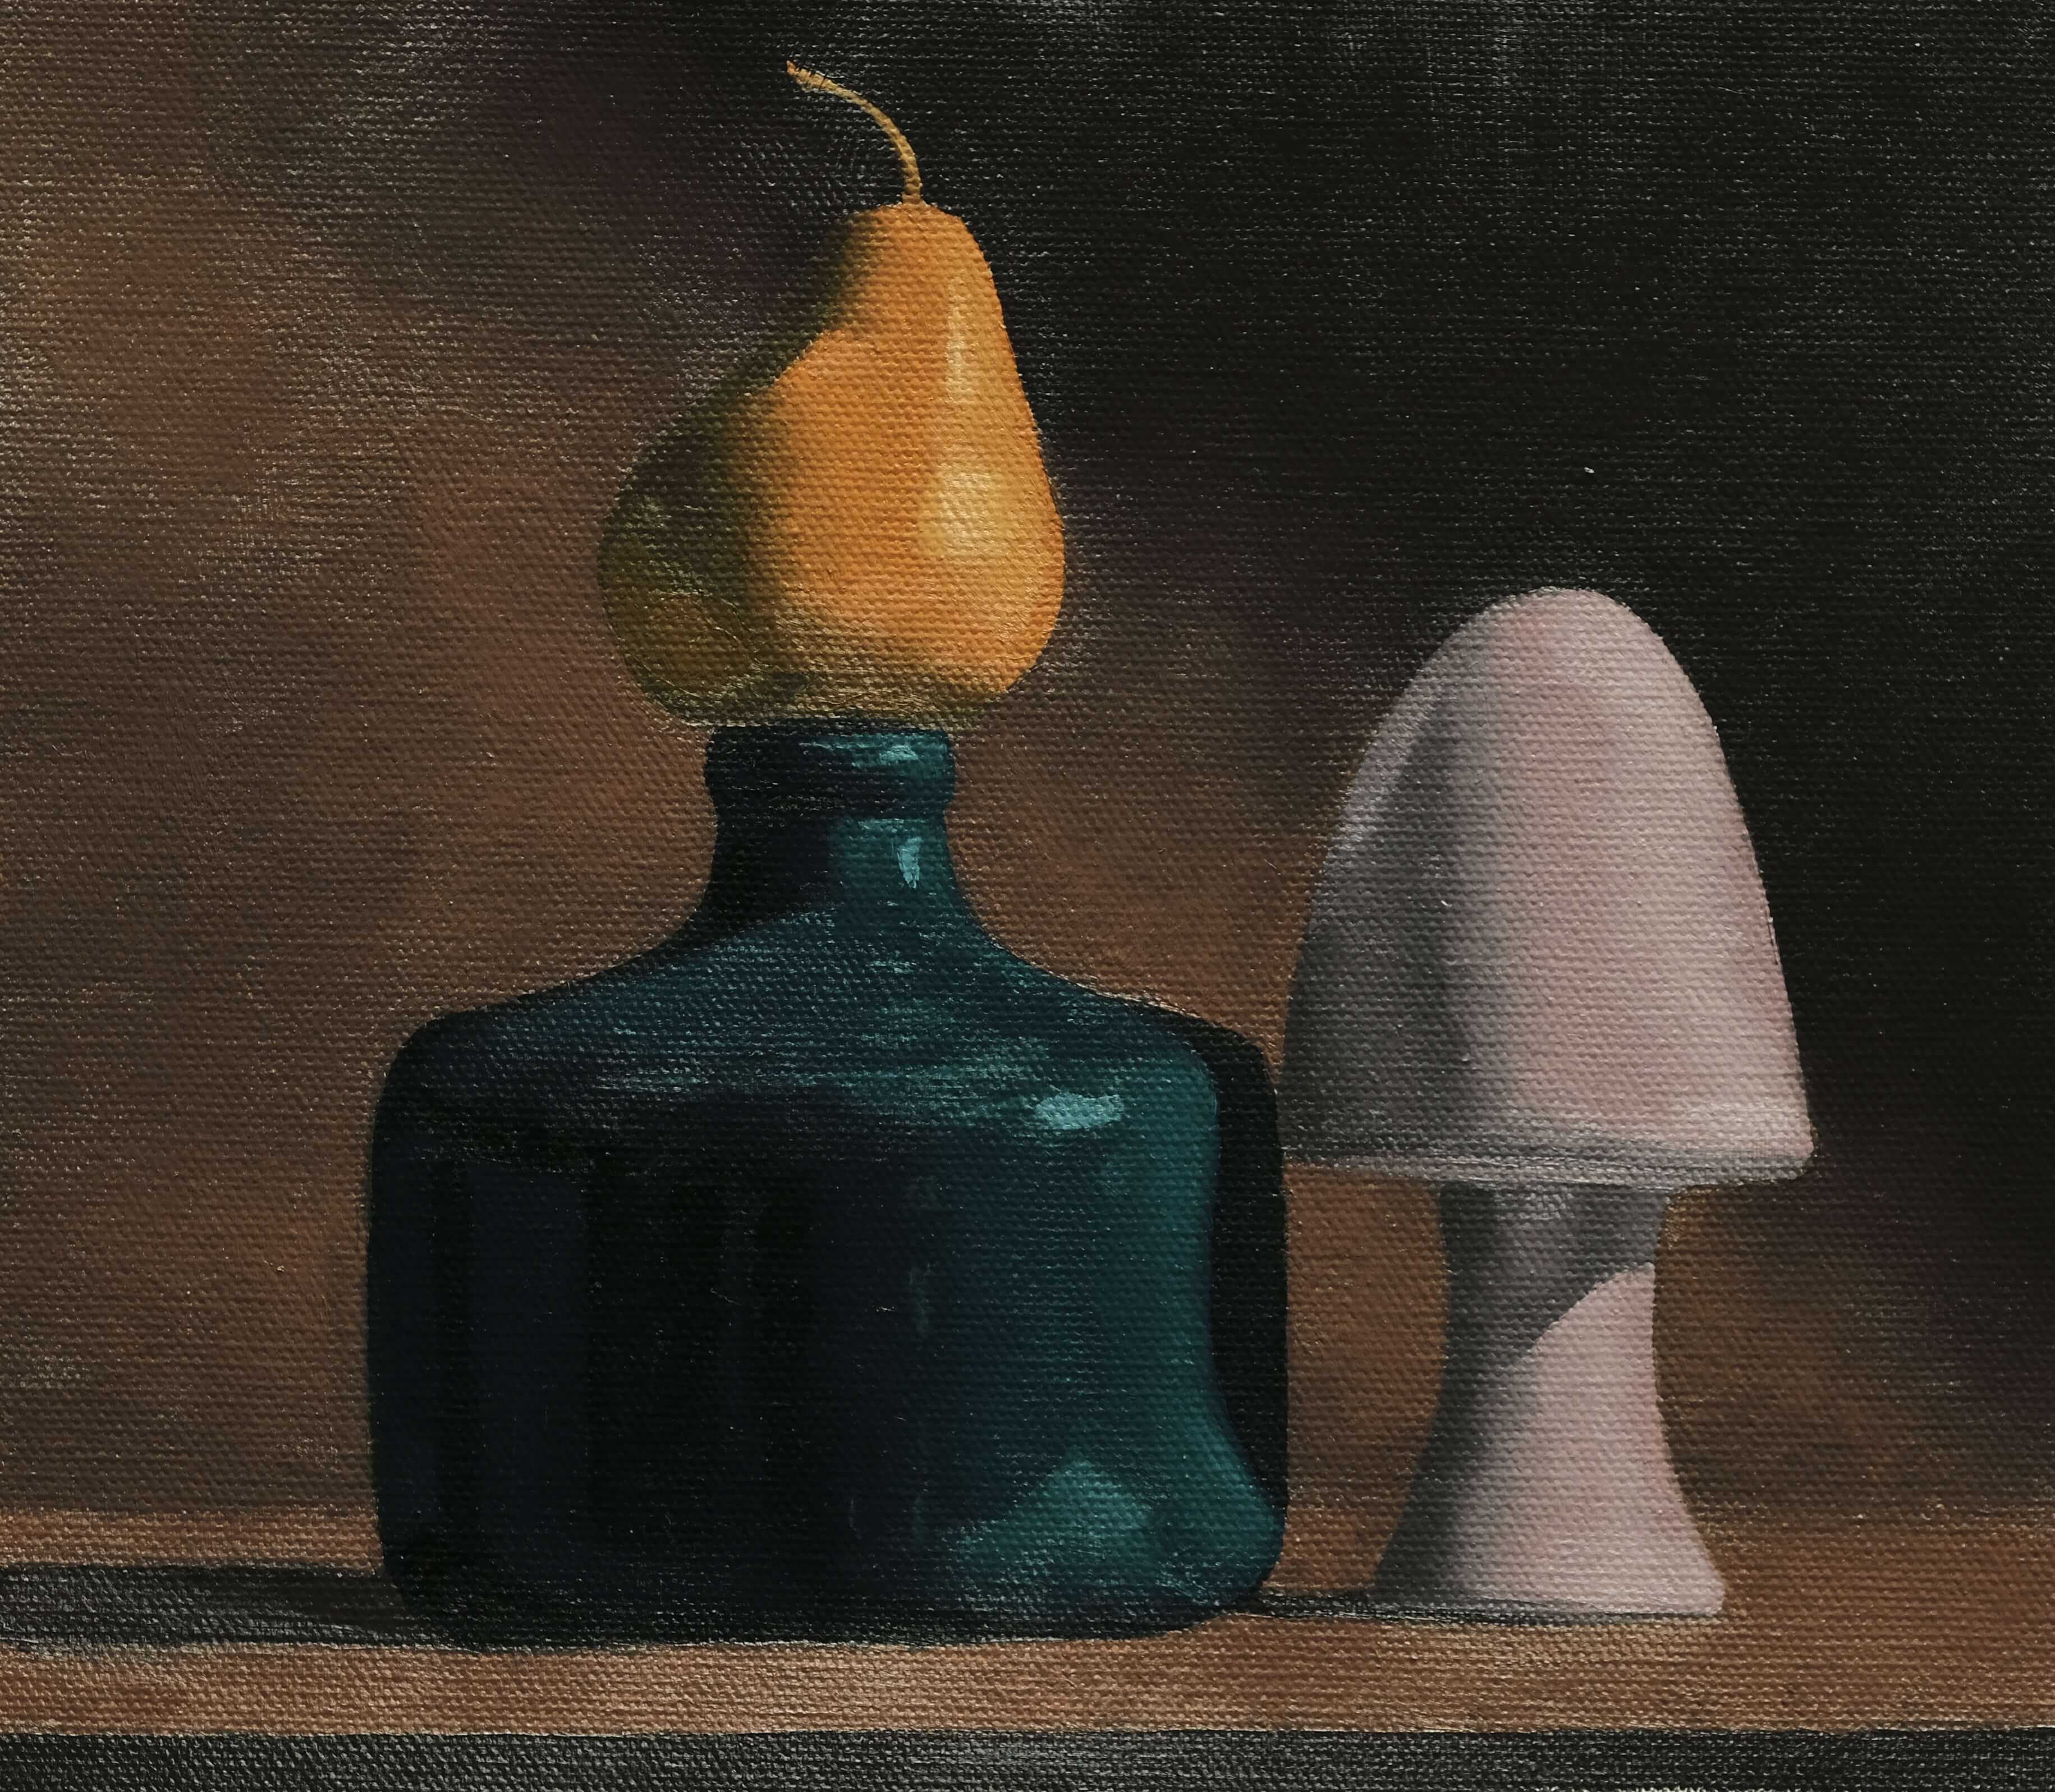 Oil painting 7